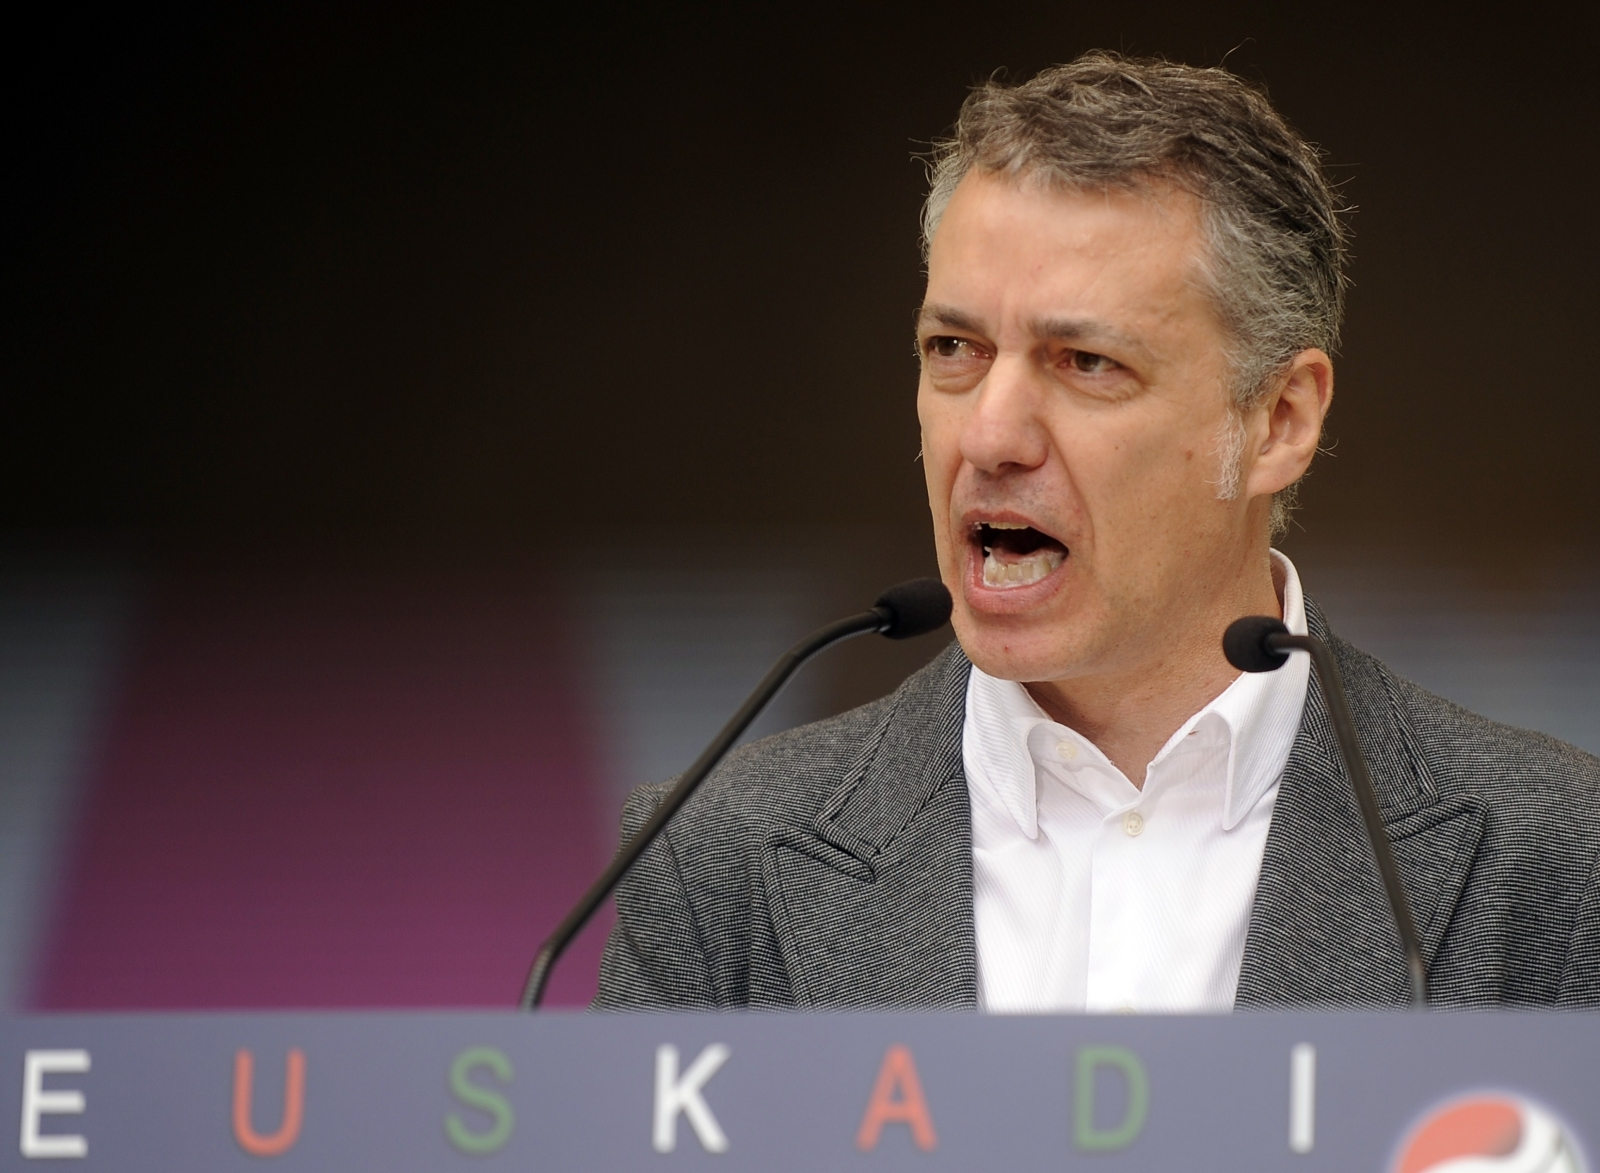 Basque National Party hopes September elections will pave the way to independence